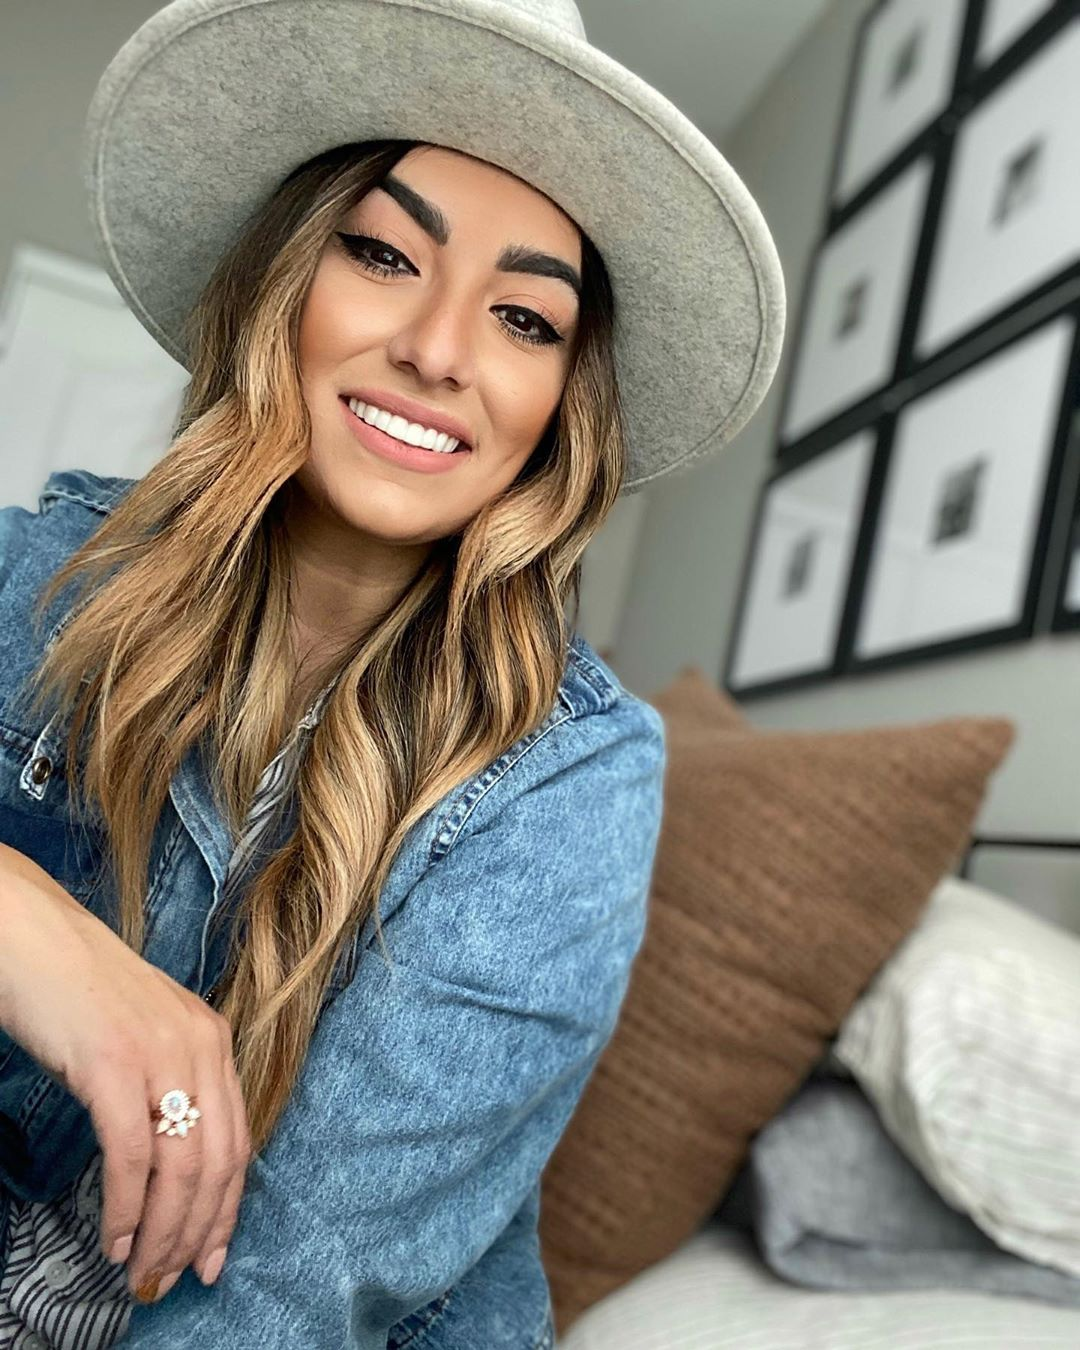 An Interview with Home Influencer Jess Hartman